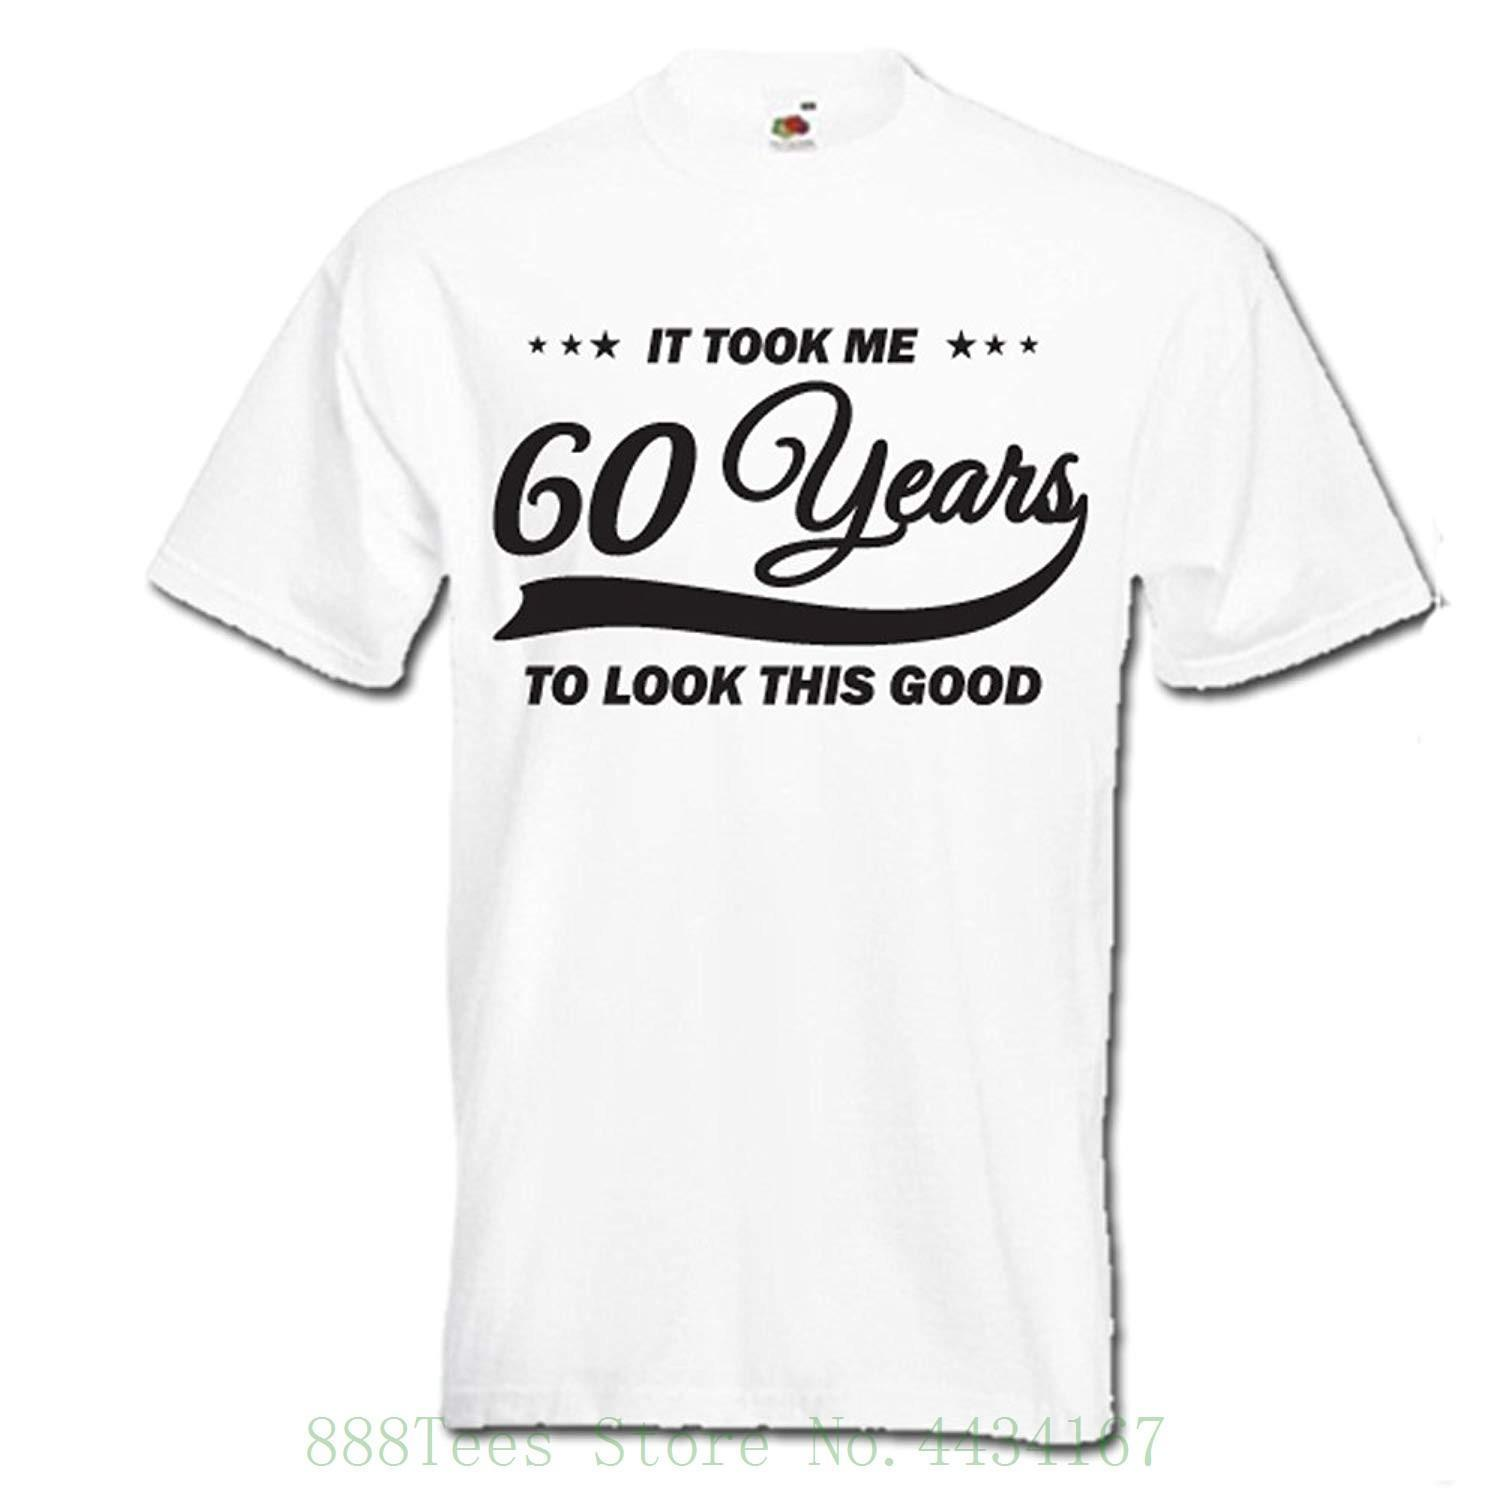 726adbb1 It Took Me 60 Years To Look This Good , Funny 60th Birthday Gift Idea ,  Mens Womens Unisex T Shirt Tshirt Casual O Neck Buy Tees Funniest T Shirt  From ...